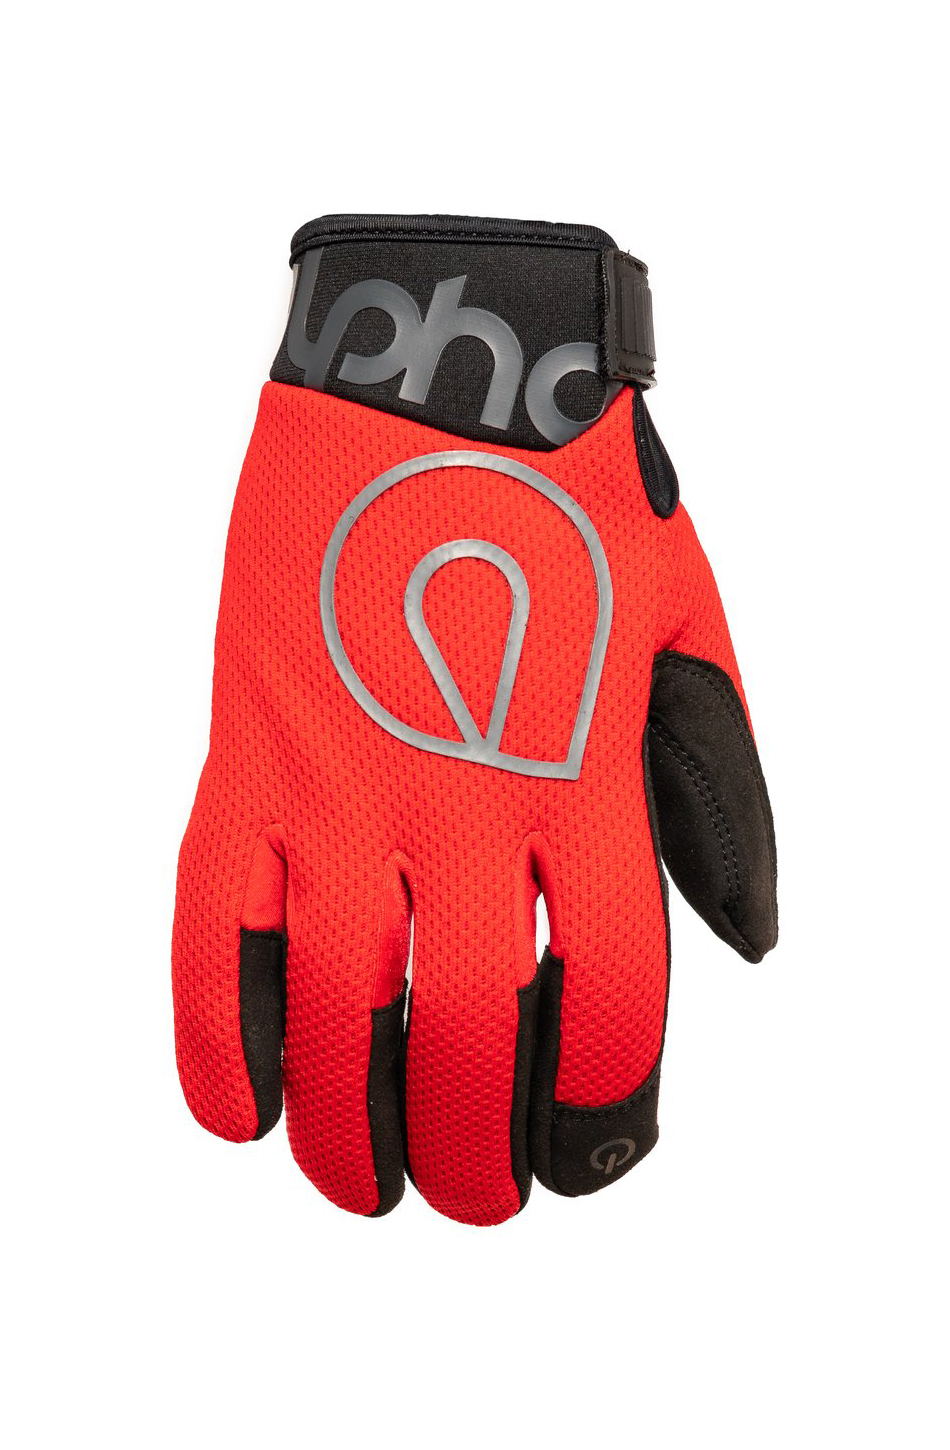 Alpha Gloves AG02-02-XL Gloves, Shop, The Standard, Hook and Loop Closure, Neoprene Cuff, Mesh Top, Touch Screen Capable, Synthetic Leather Palm, Red, X-Large, Pair